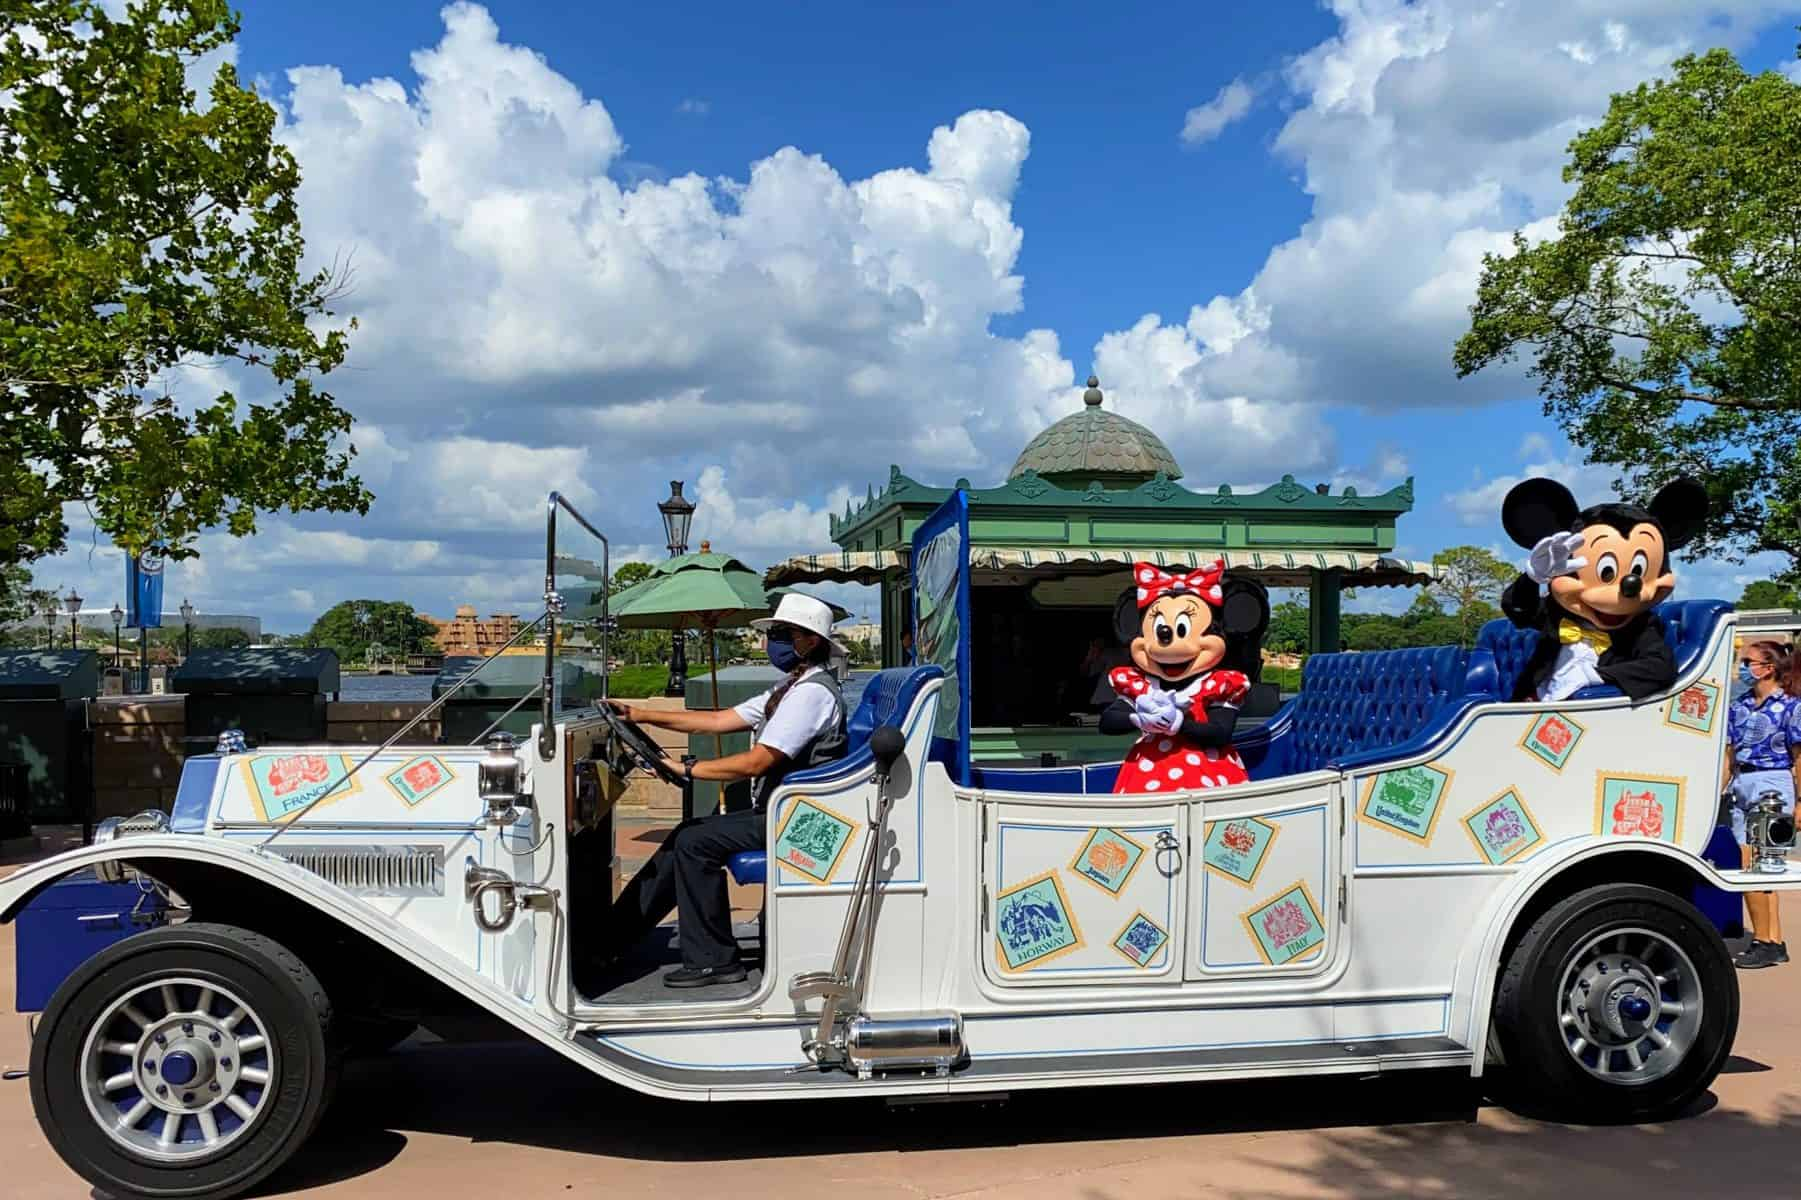 Mickey and friends cavalcade